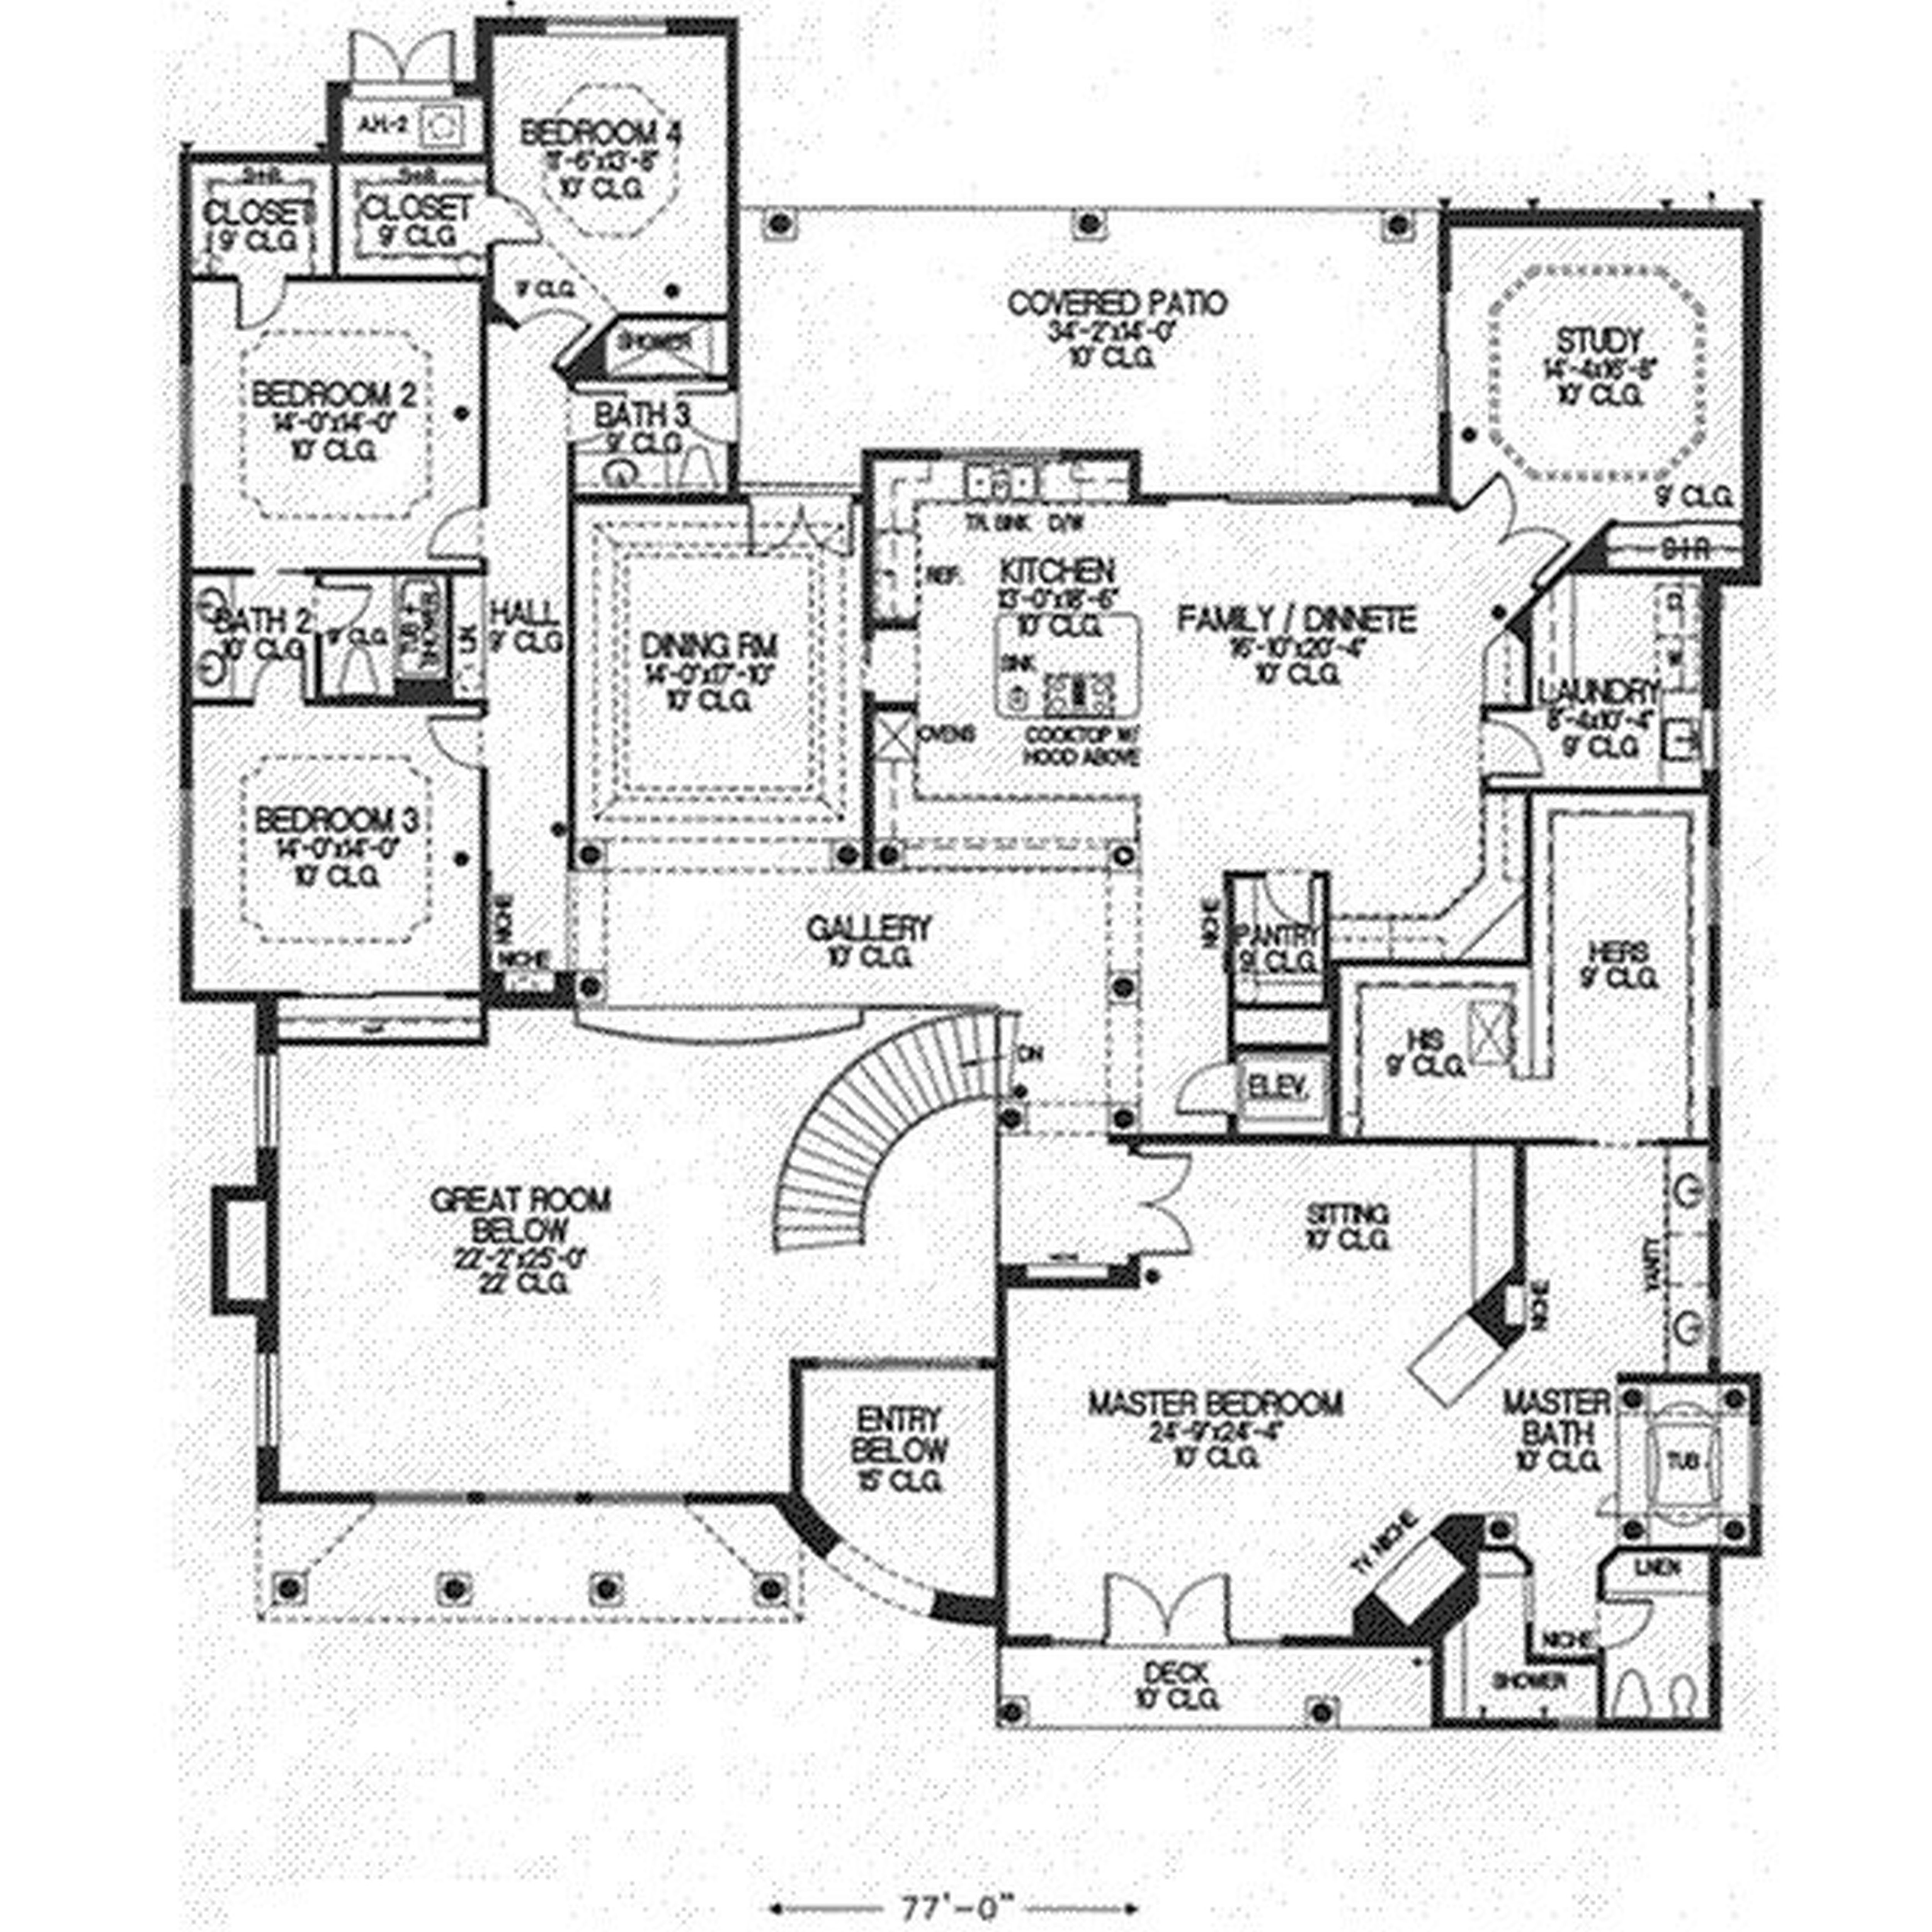 5000x5000 Apartment Architecture Home Designs Planner Online For Bathroom